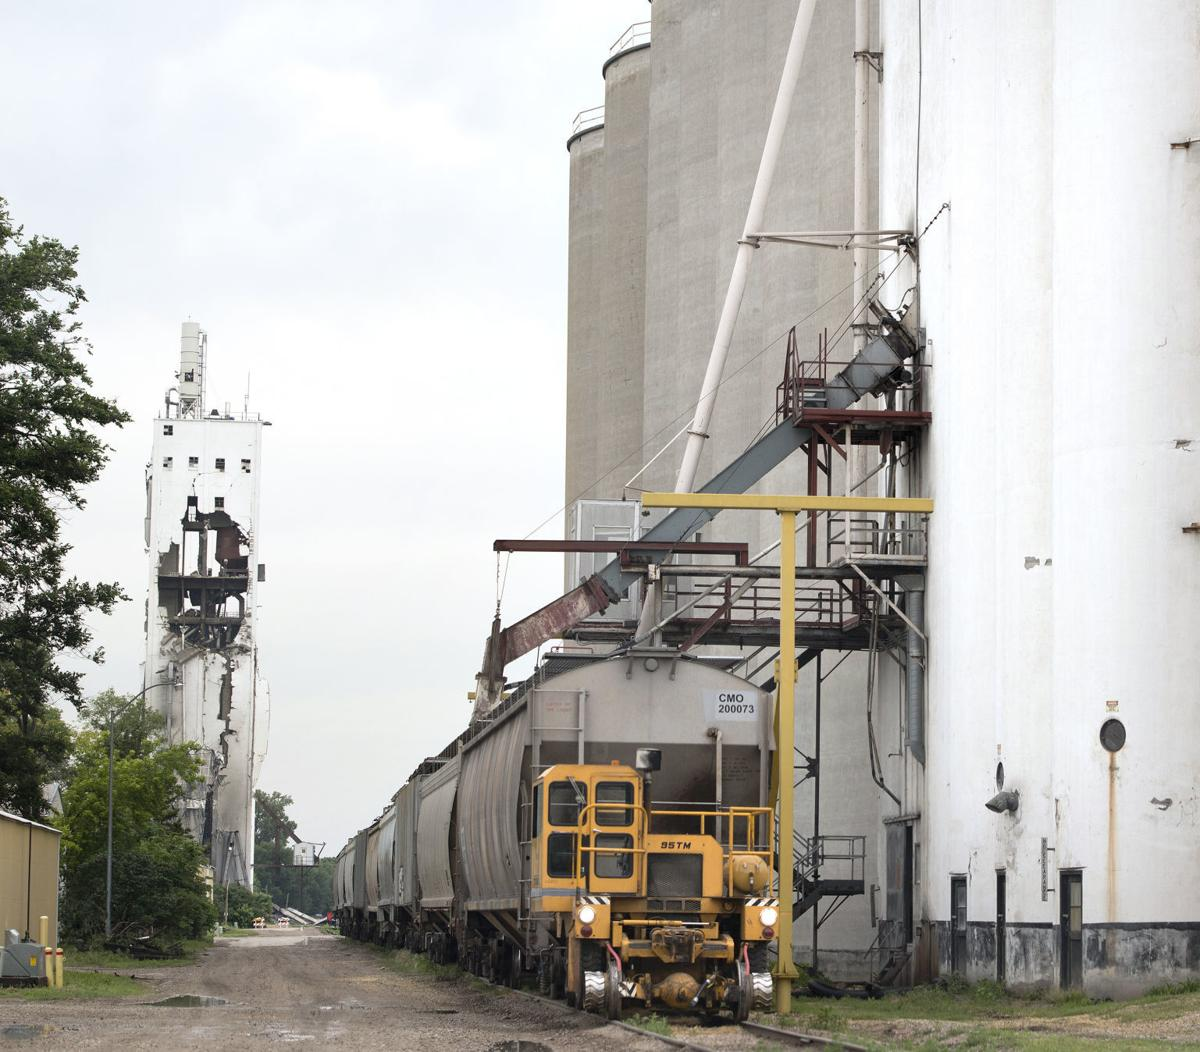 Grain elevator safety